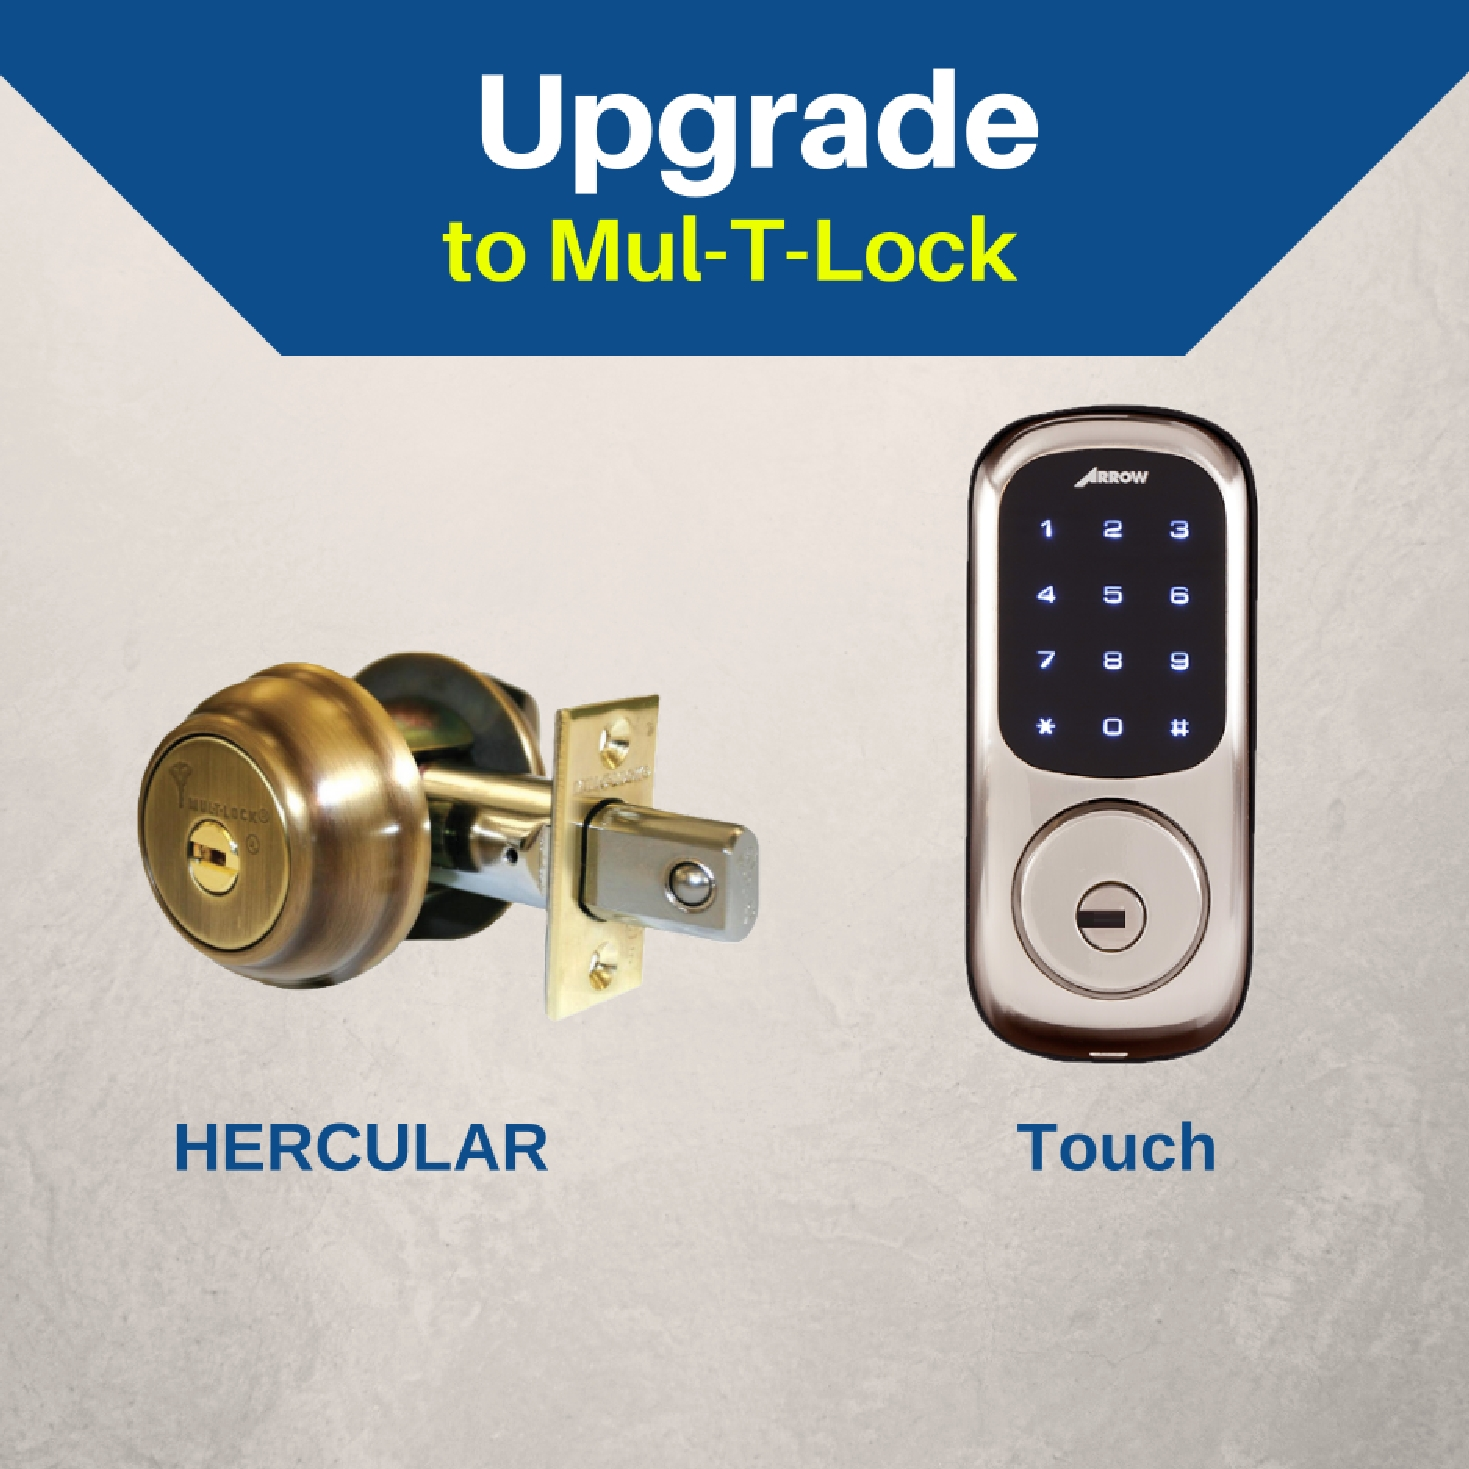 Upgrade your lock to a modern deadbolt with Mul-T-Lock